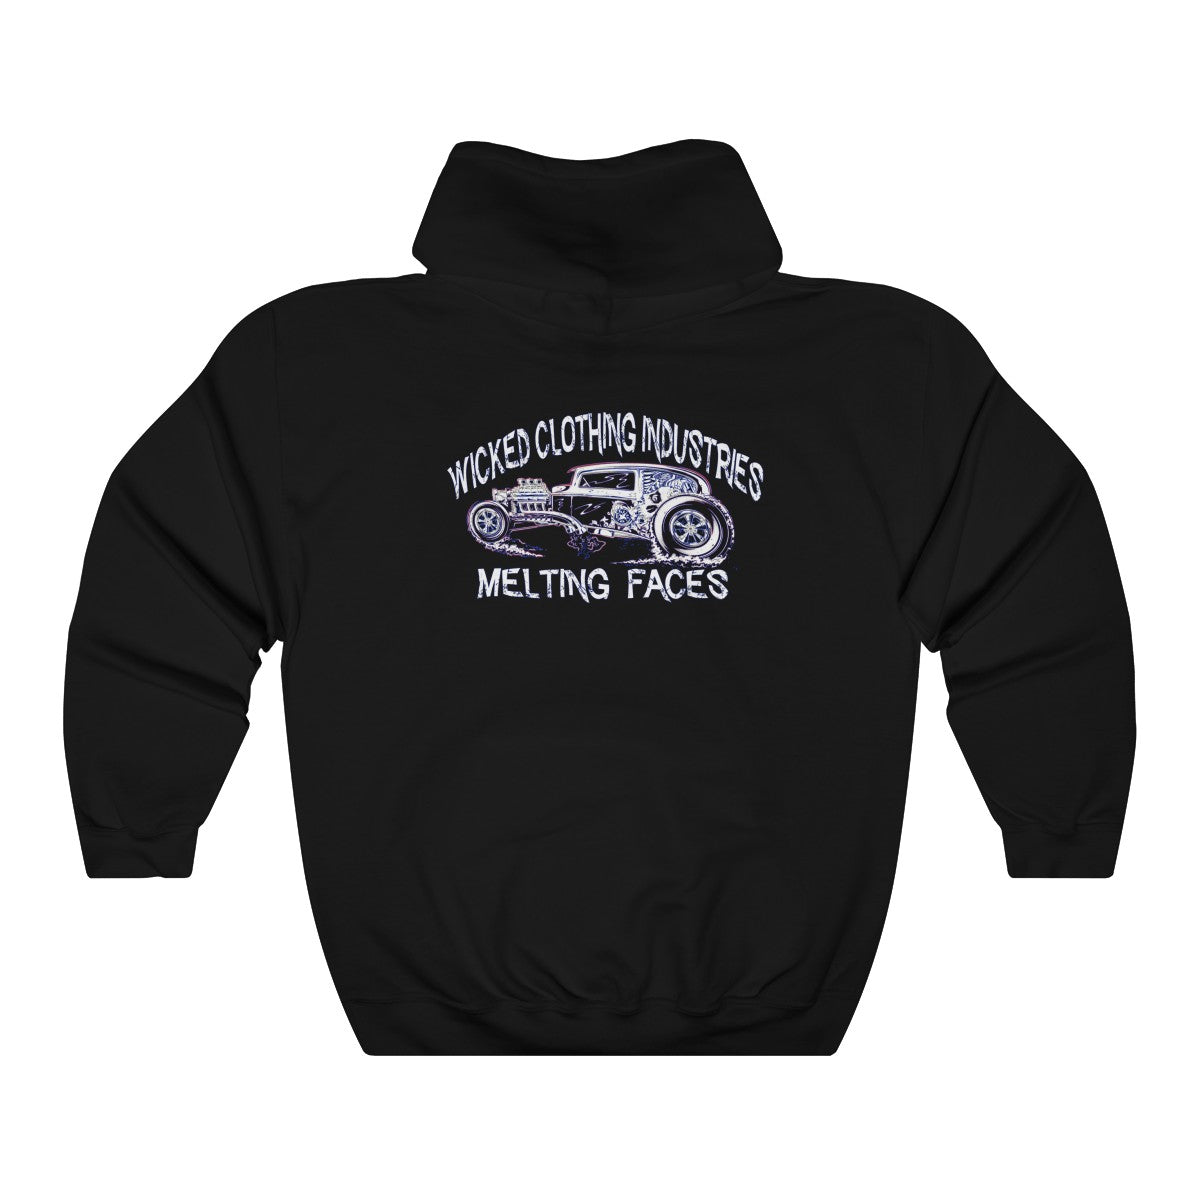 WCI MELTING FACES Unisex Heavy Blend™ Hooded Sweatshirt